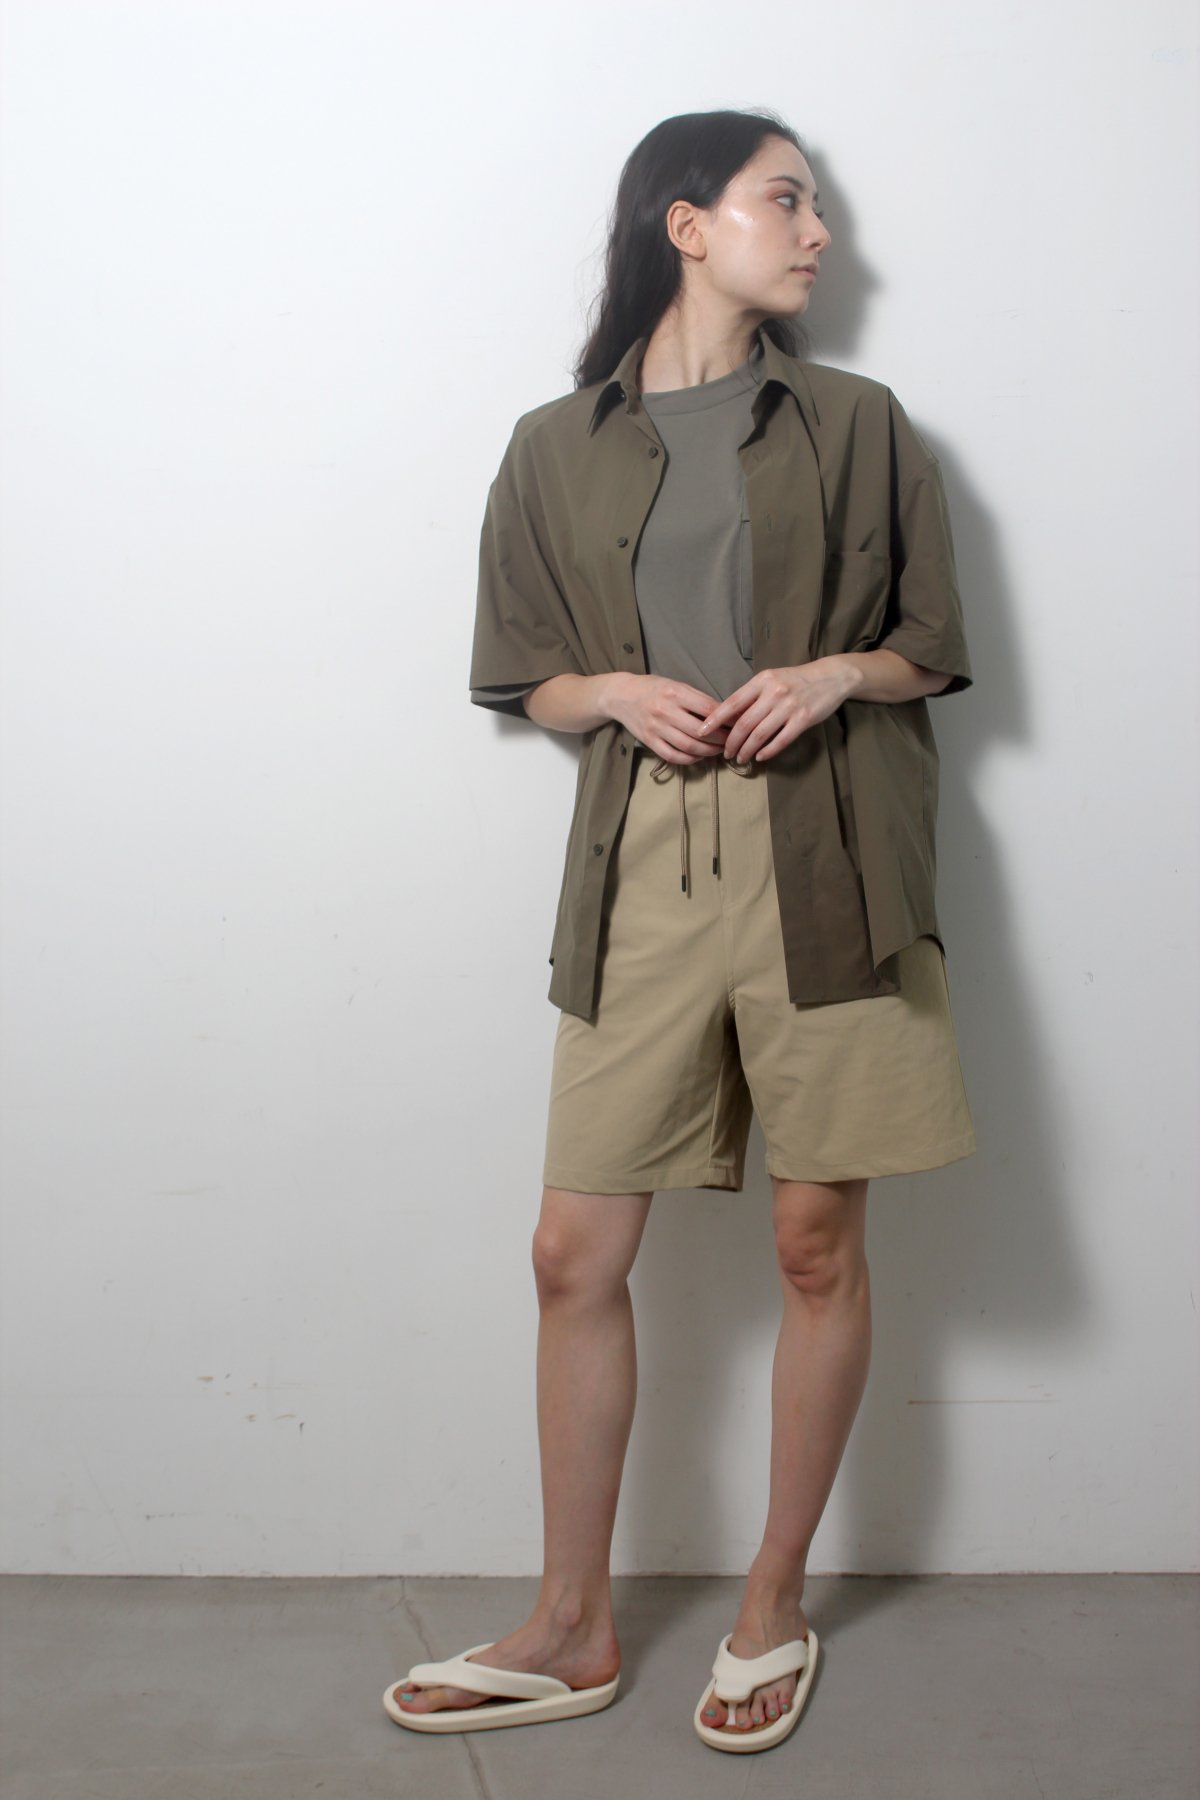 S/S Over size SHIRTS(SOLOTEX) 詳細画像11